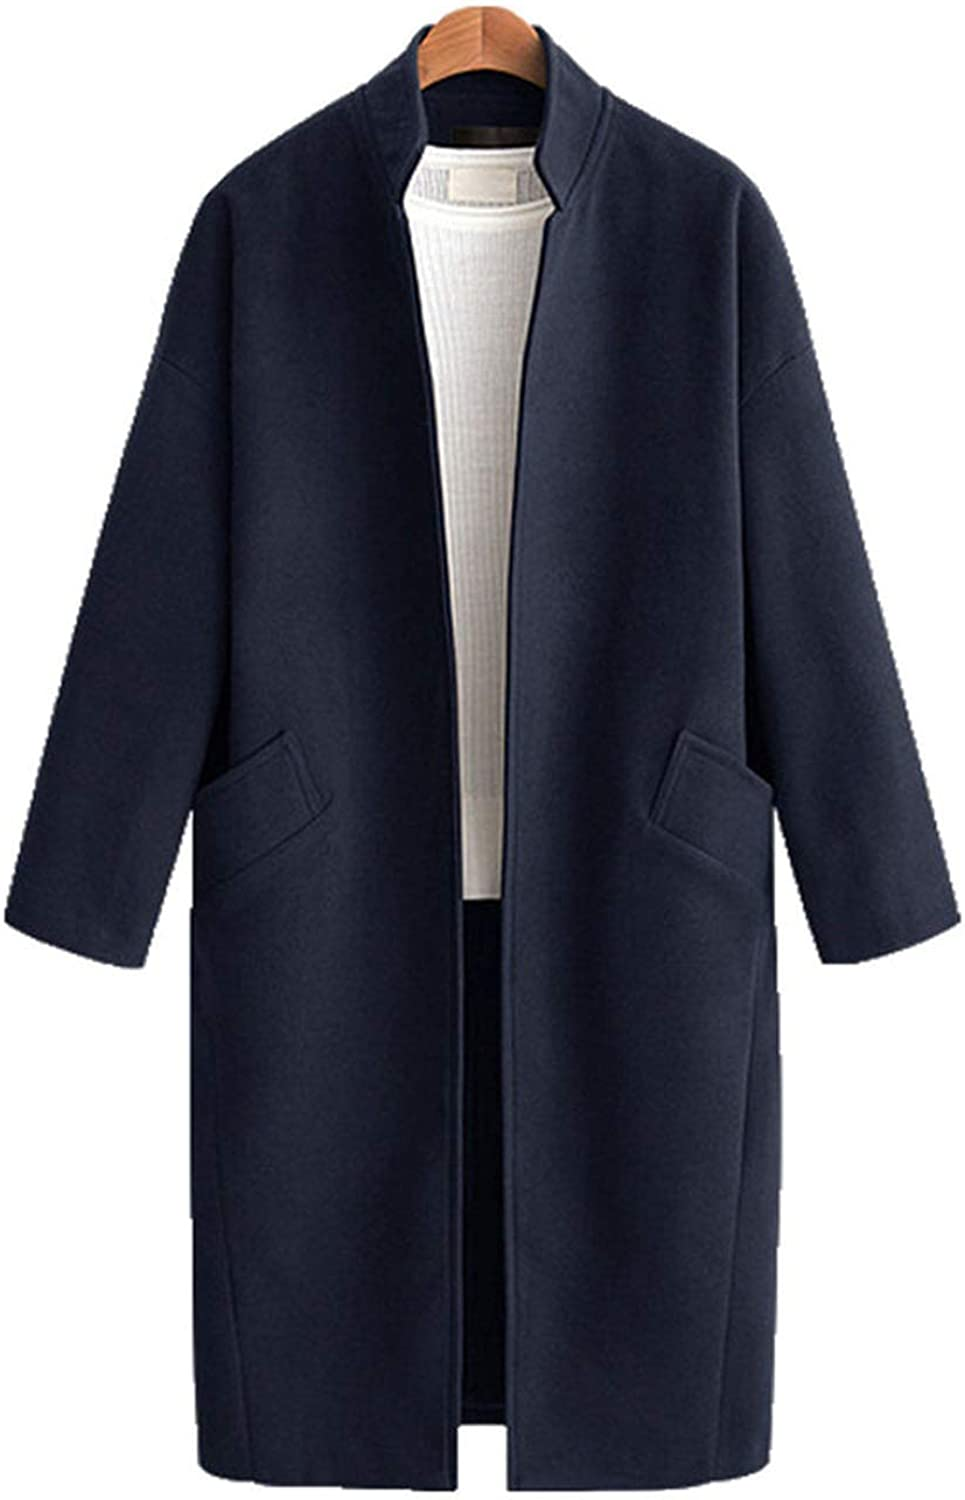 colorfulspace Women Long Wool Blends Coat Elegant Casual Thick Cardigan Cashmere Overcoat,Navy bluee,4XL